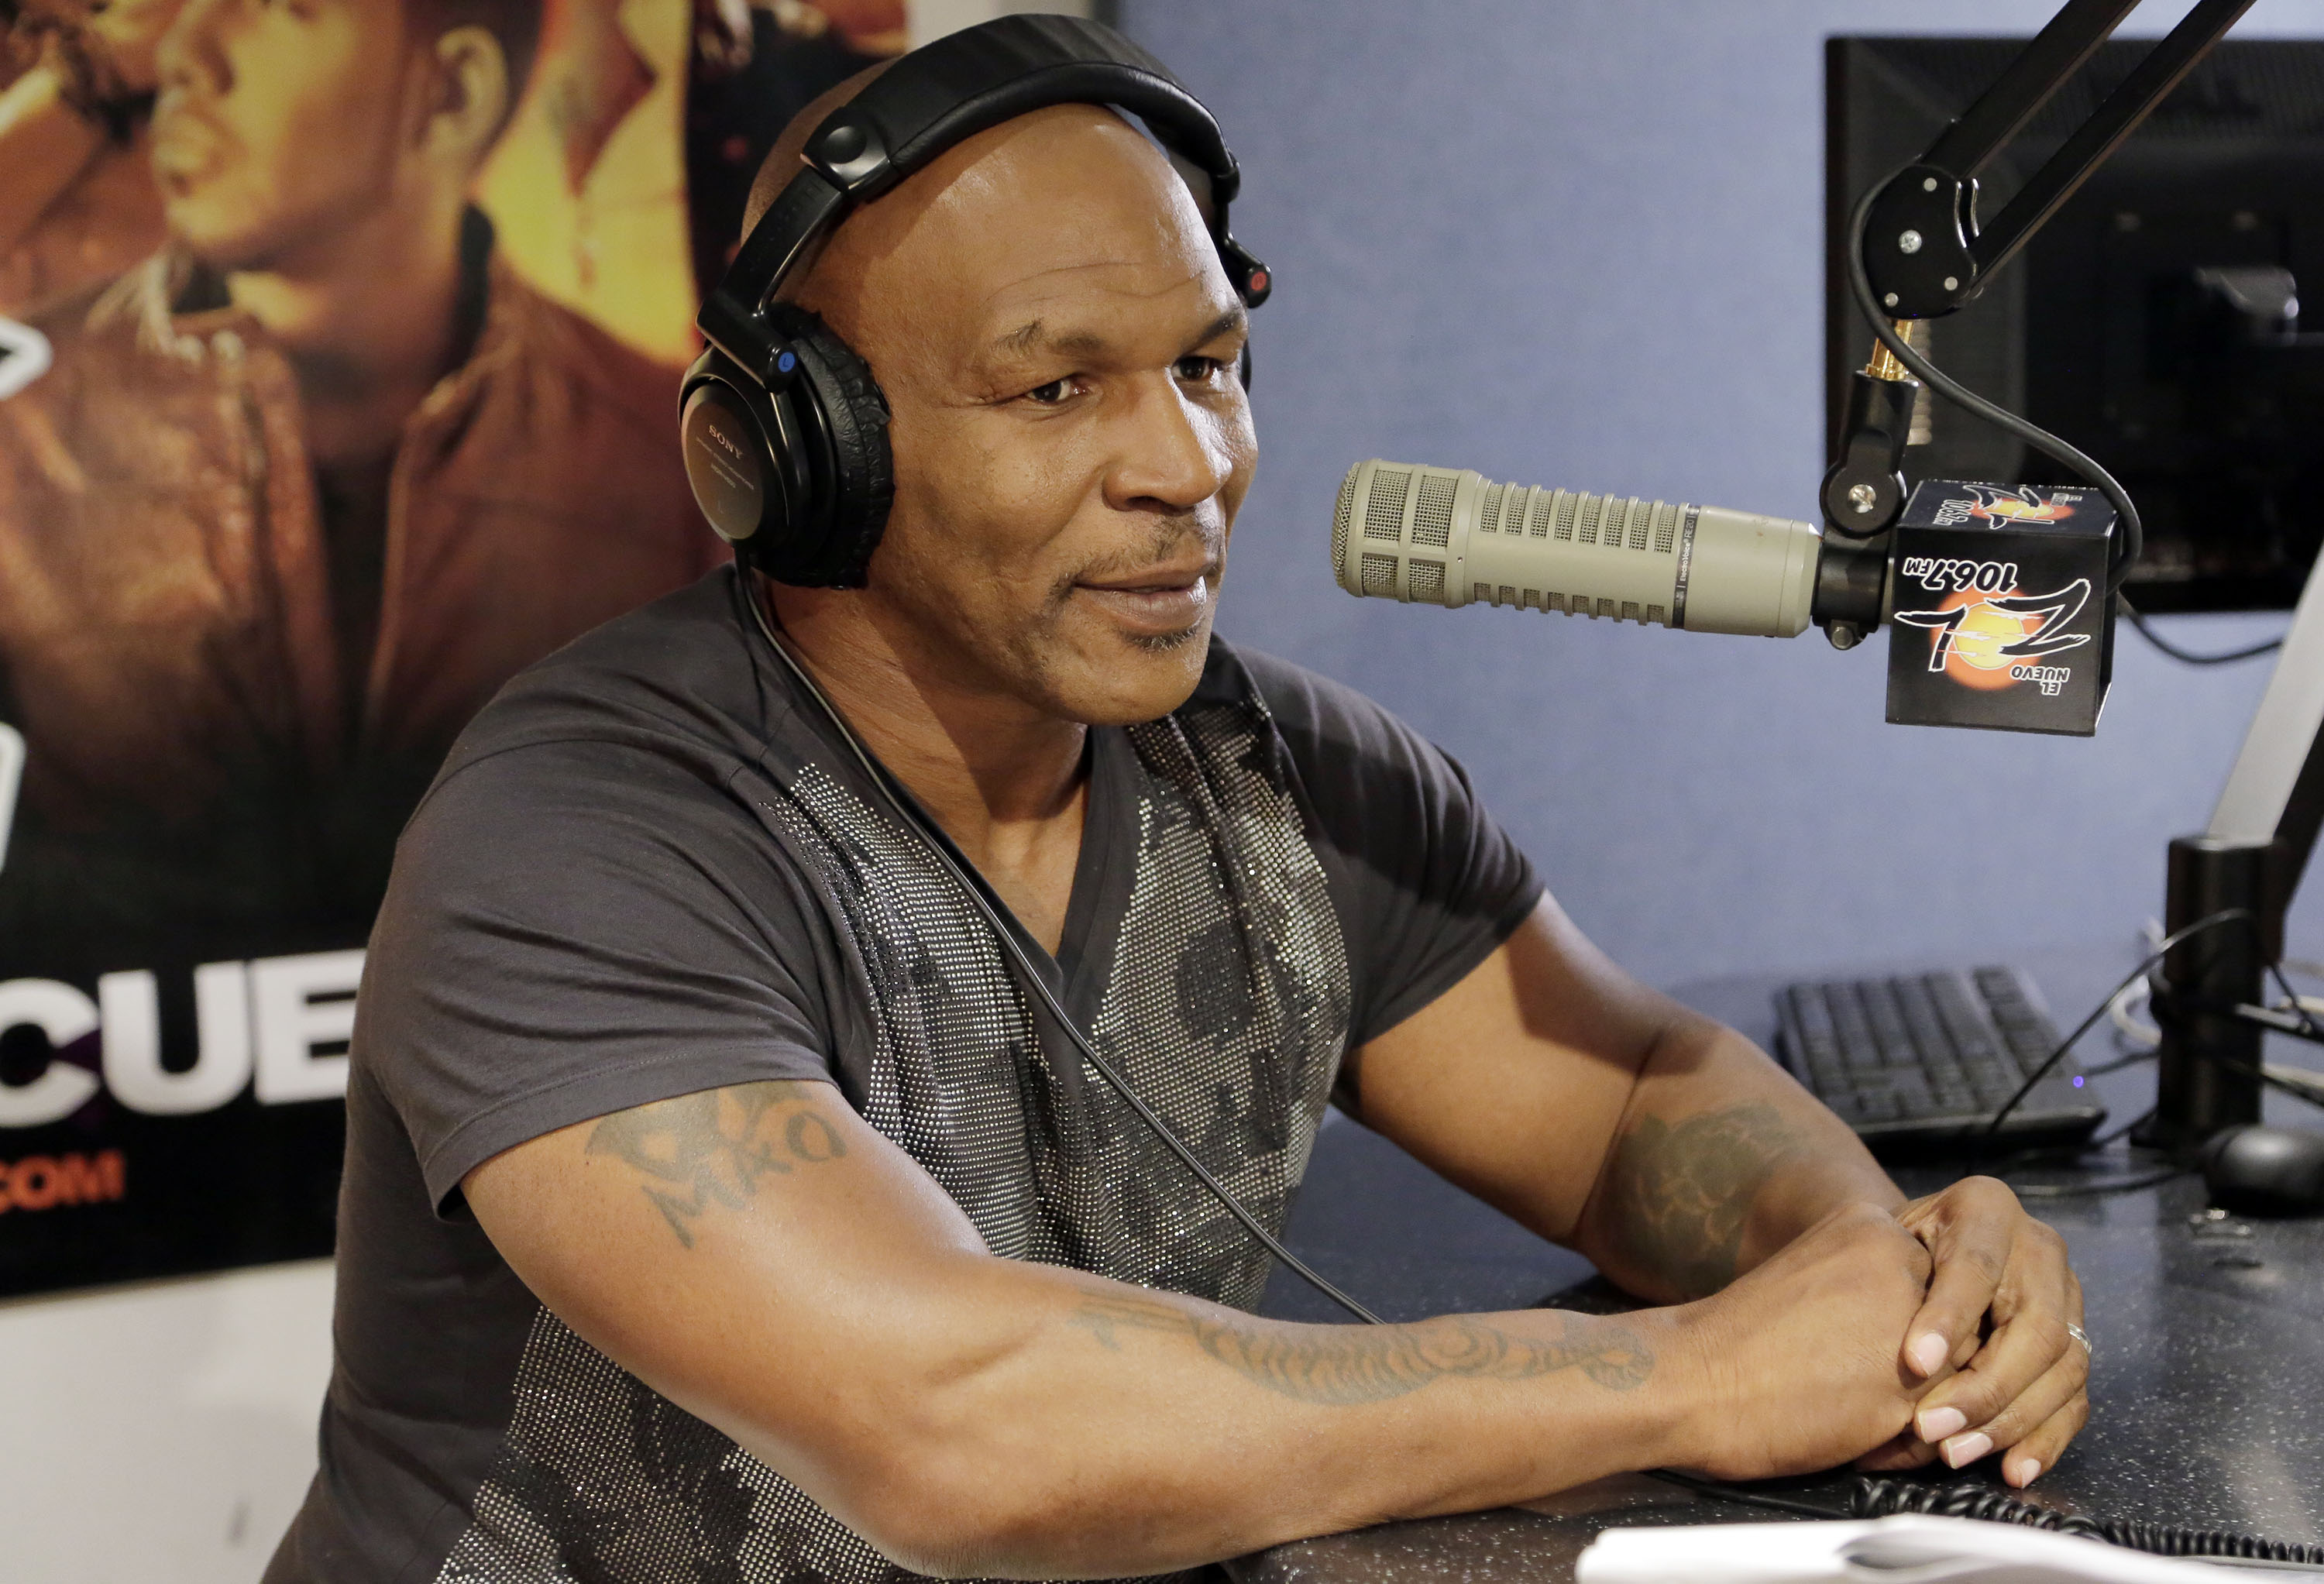 Mike Tyson said he wanted to be mad at his father, but wasn't angry at him